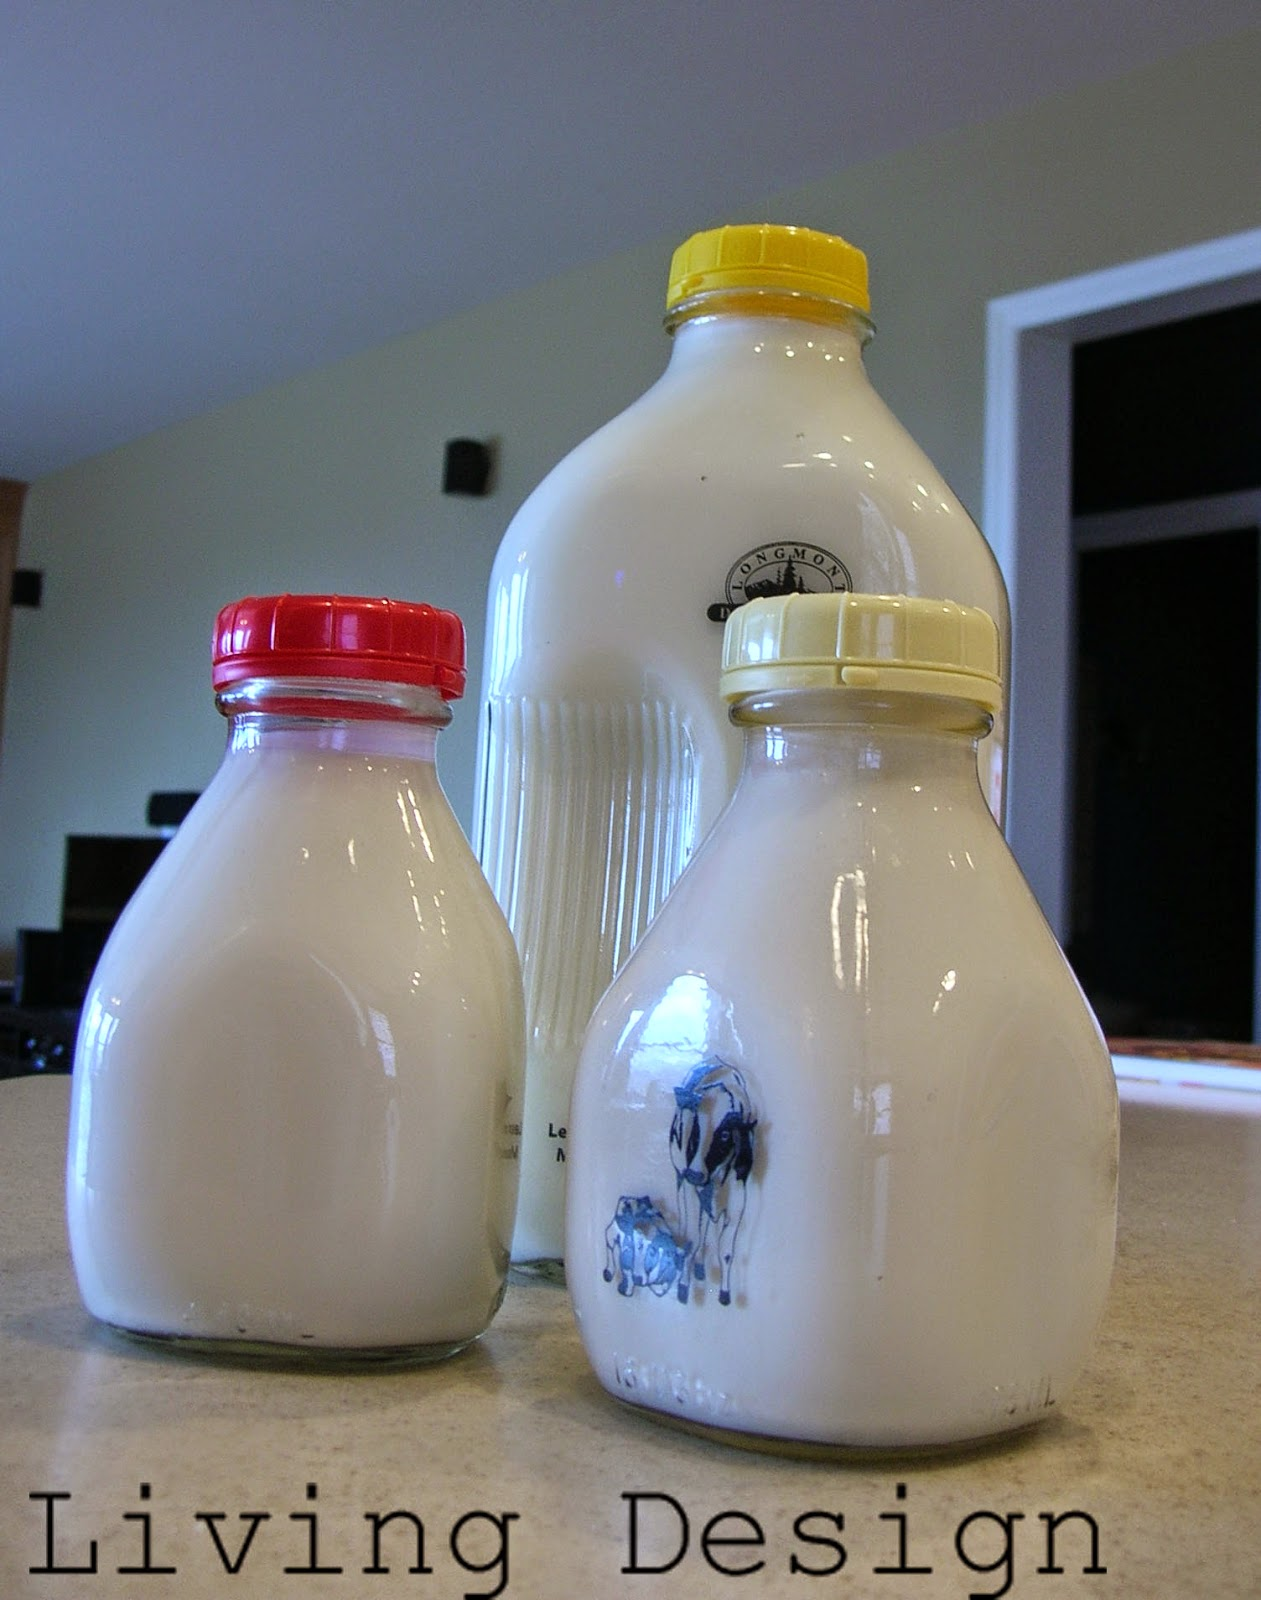 Living Design: Waste Not Day 1 Glass Milk Bottles